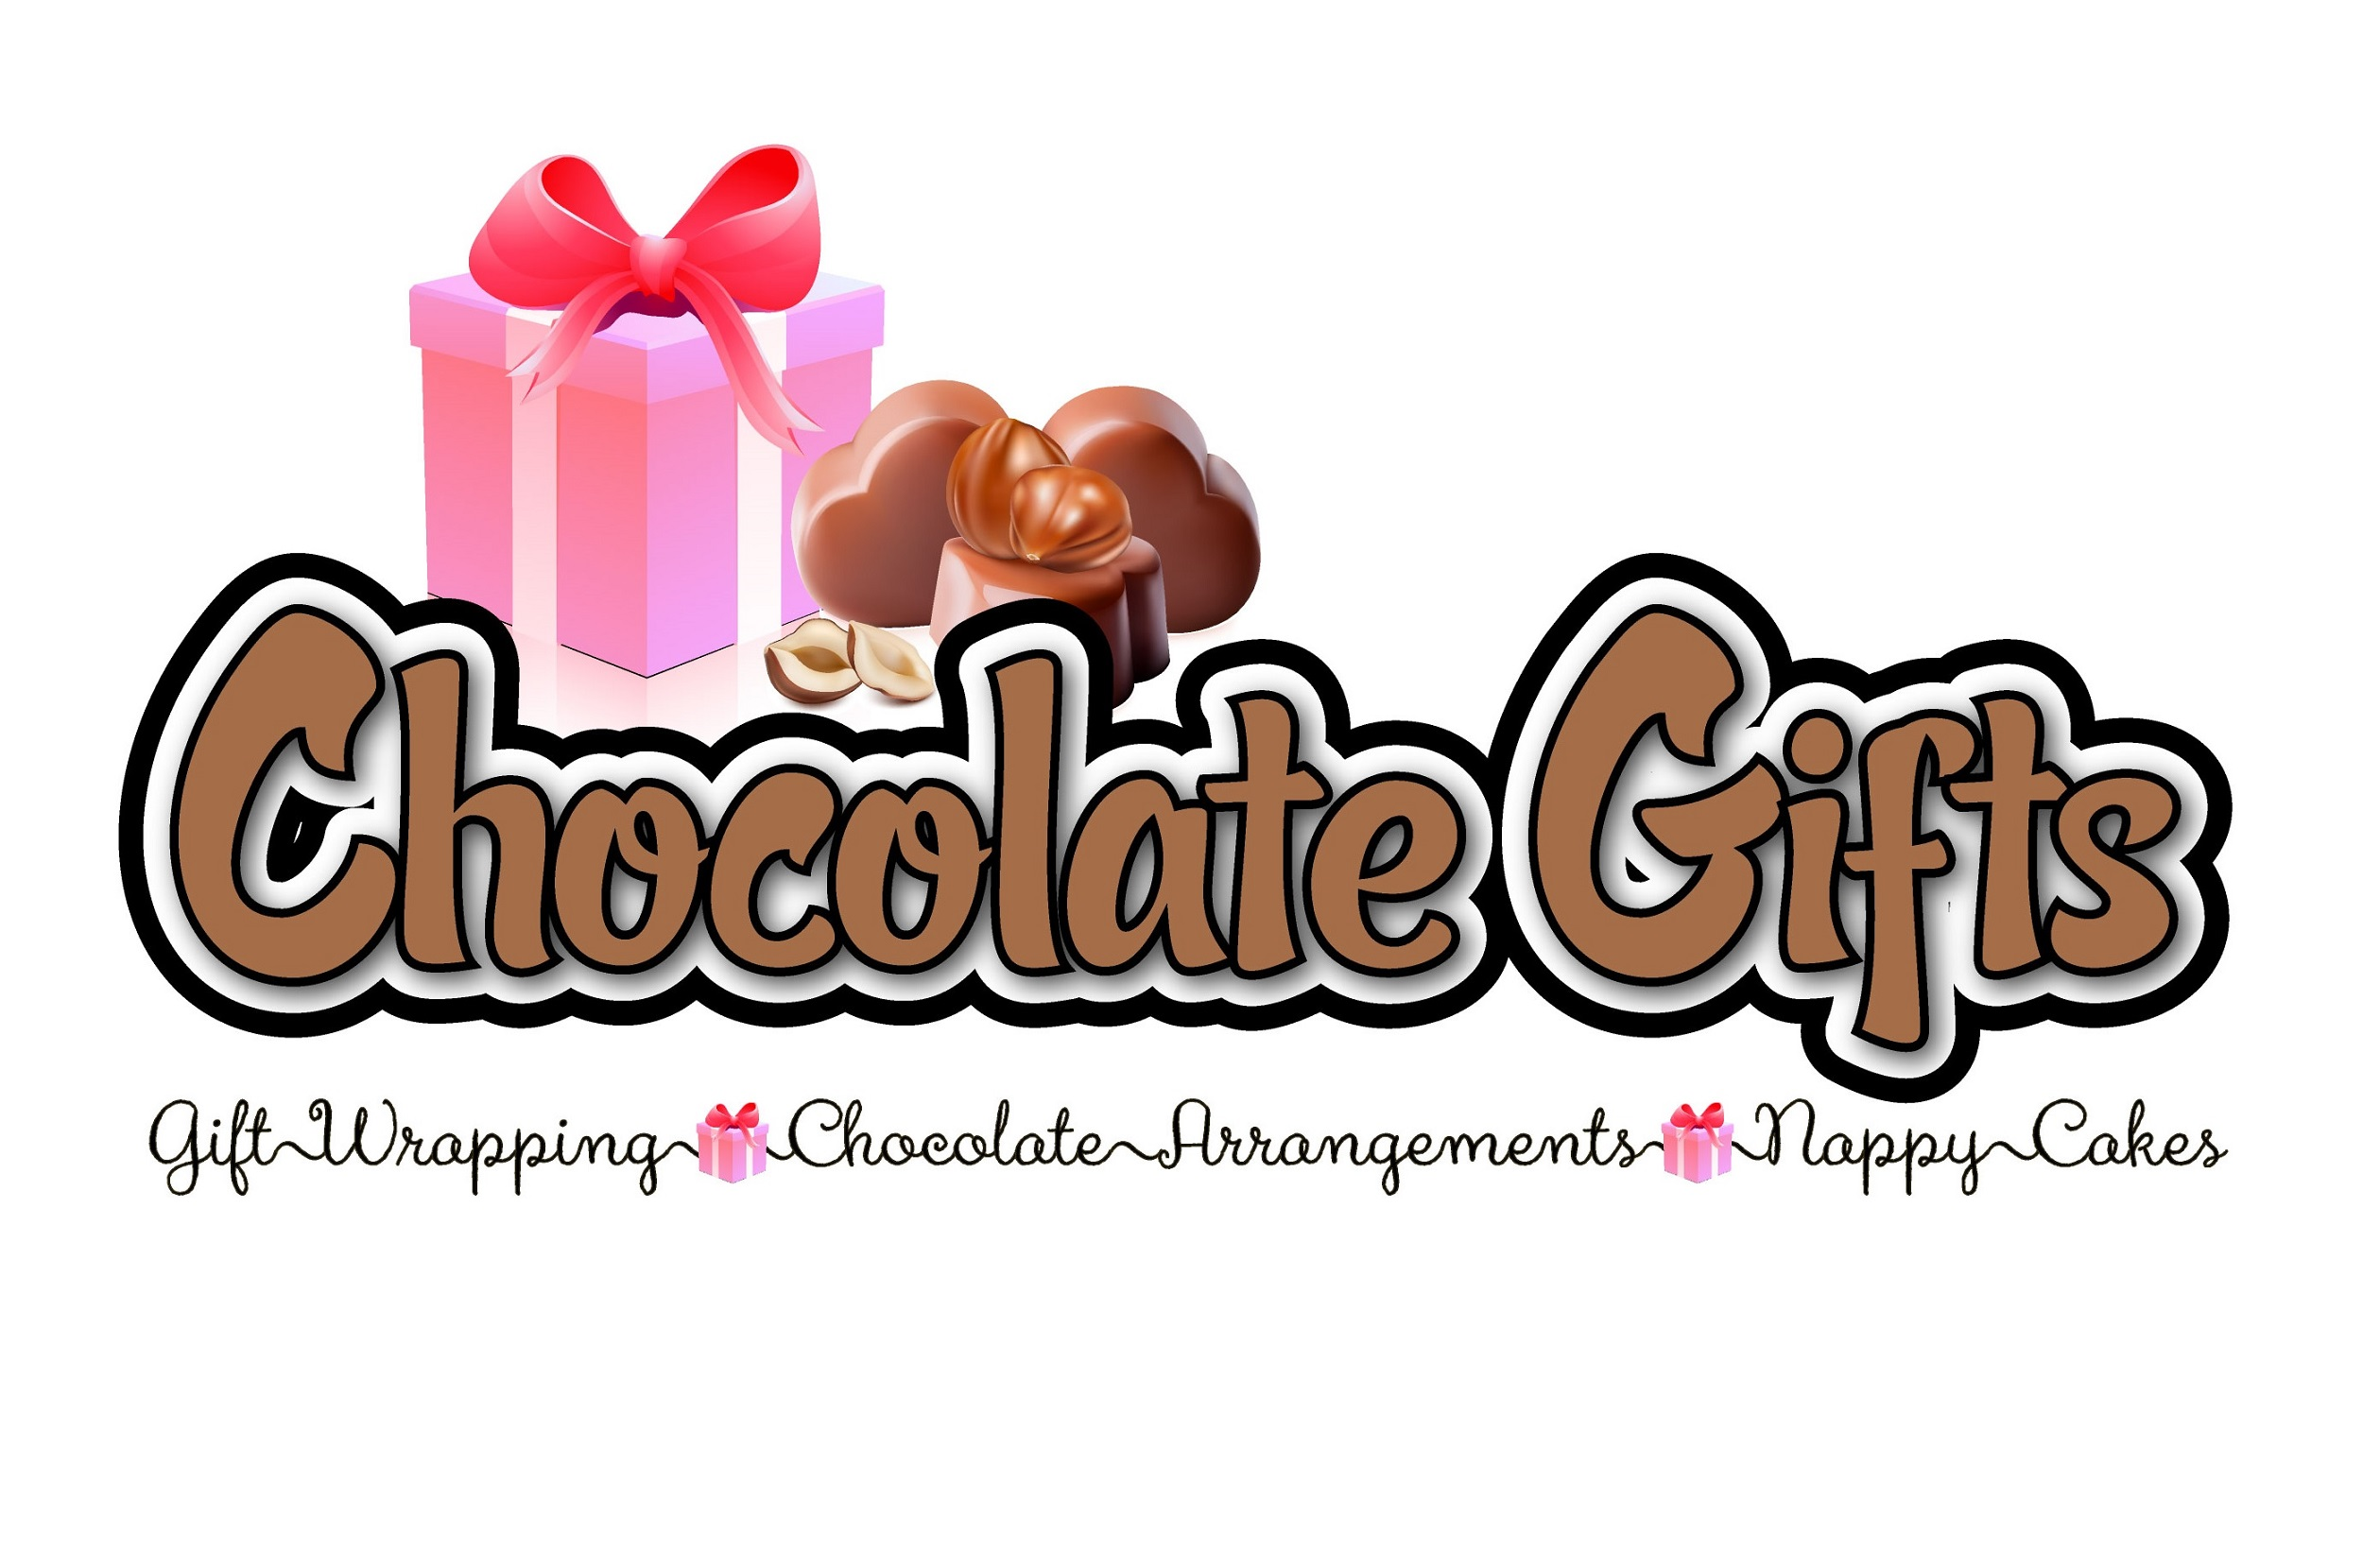 Chocolate Gifts Manchester